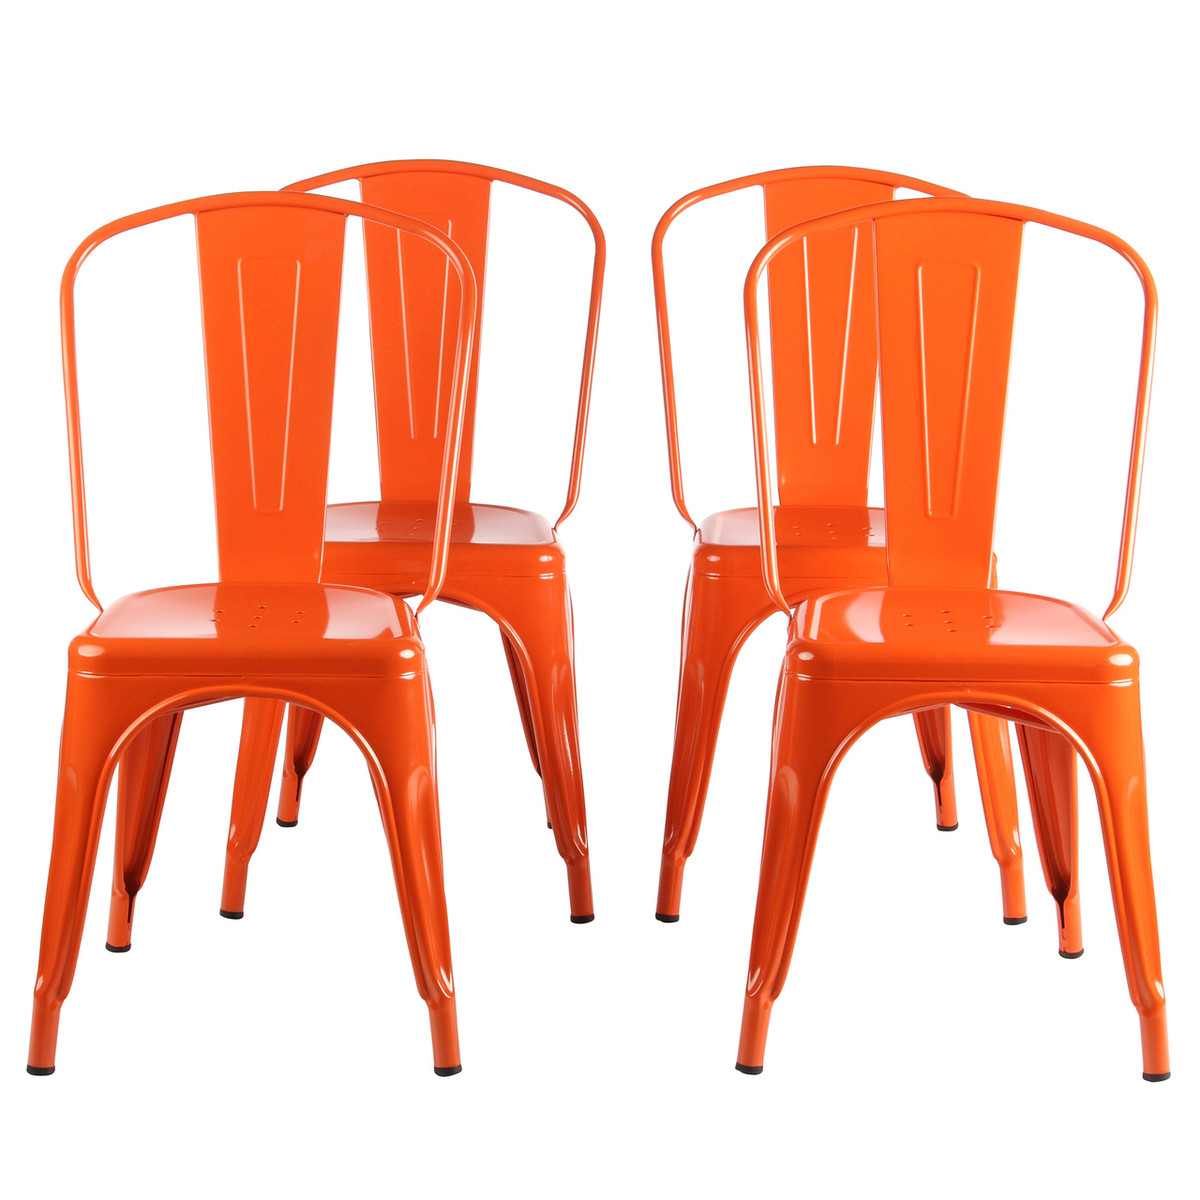 Exceptionnel Metal Industrial Cafe Dining Chair In Orange, Set Of 4